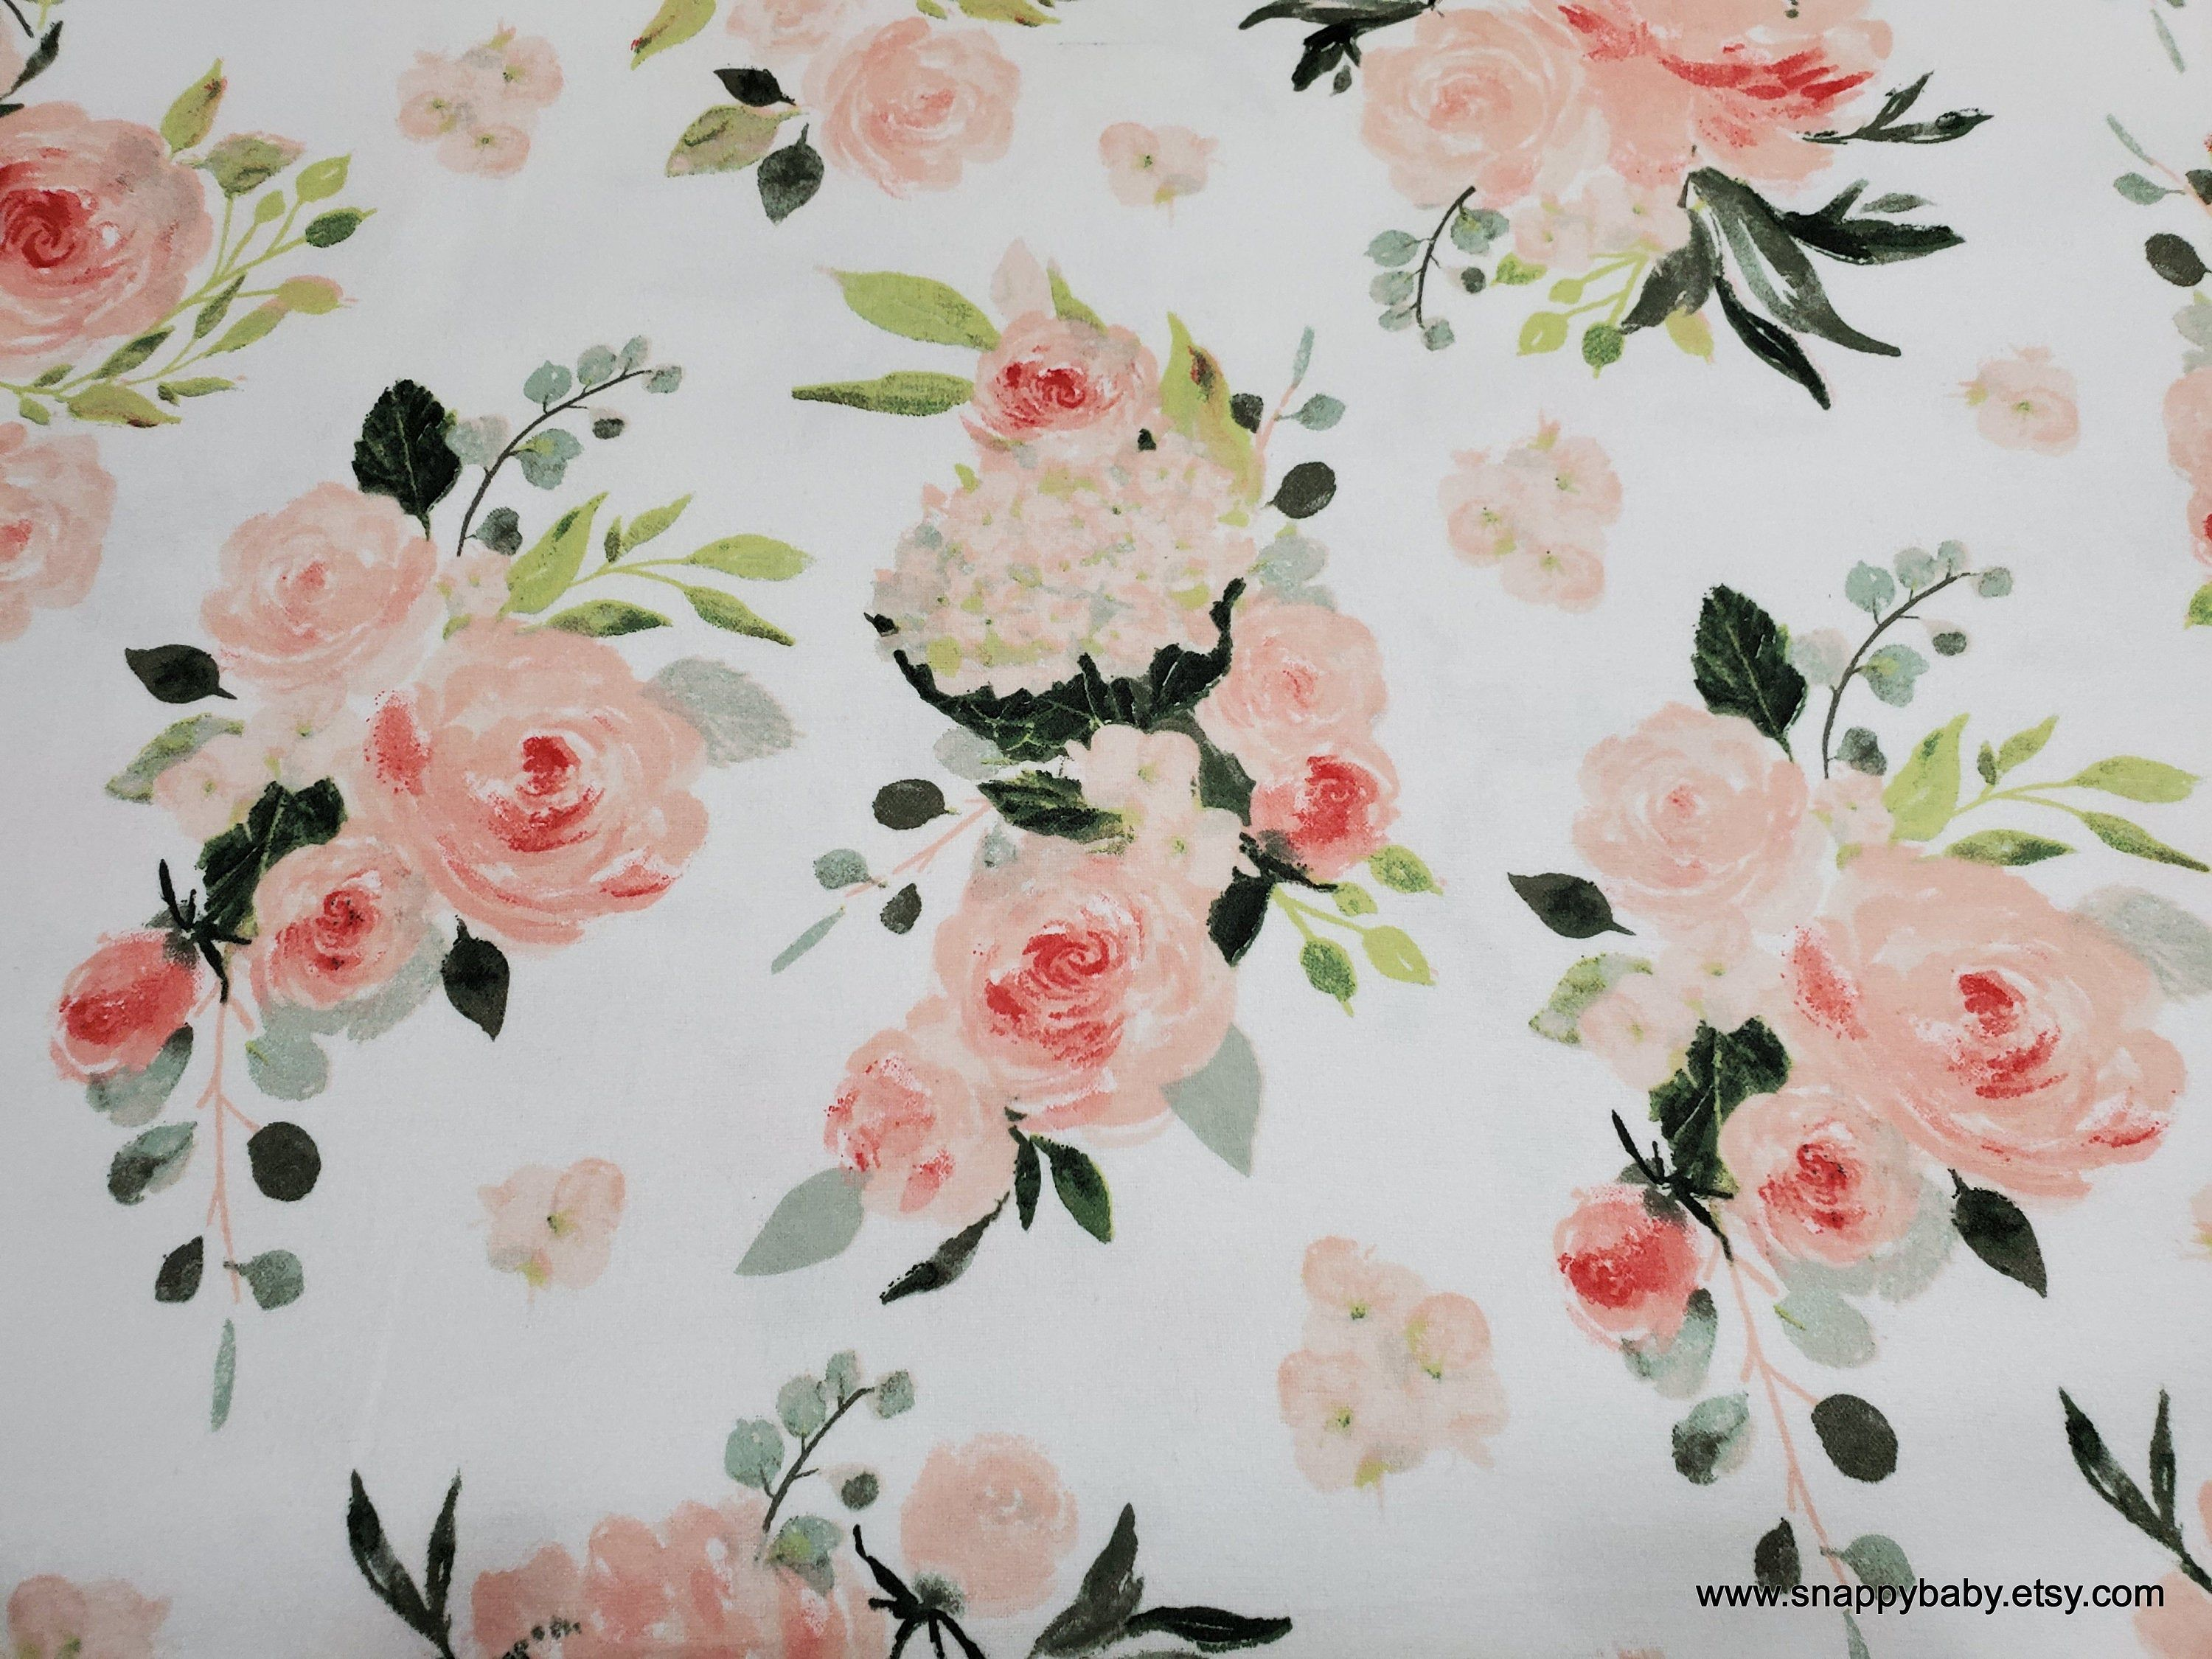 Flannel Fabric Coral White Floral By The Yard 100 Cotton Flannel In 2020 Flannel Fabric Cotton Flannel Fabric